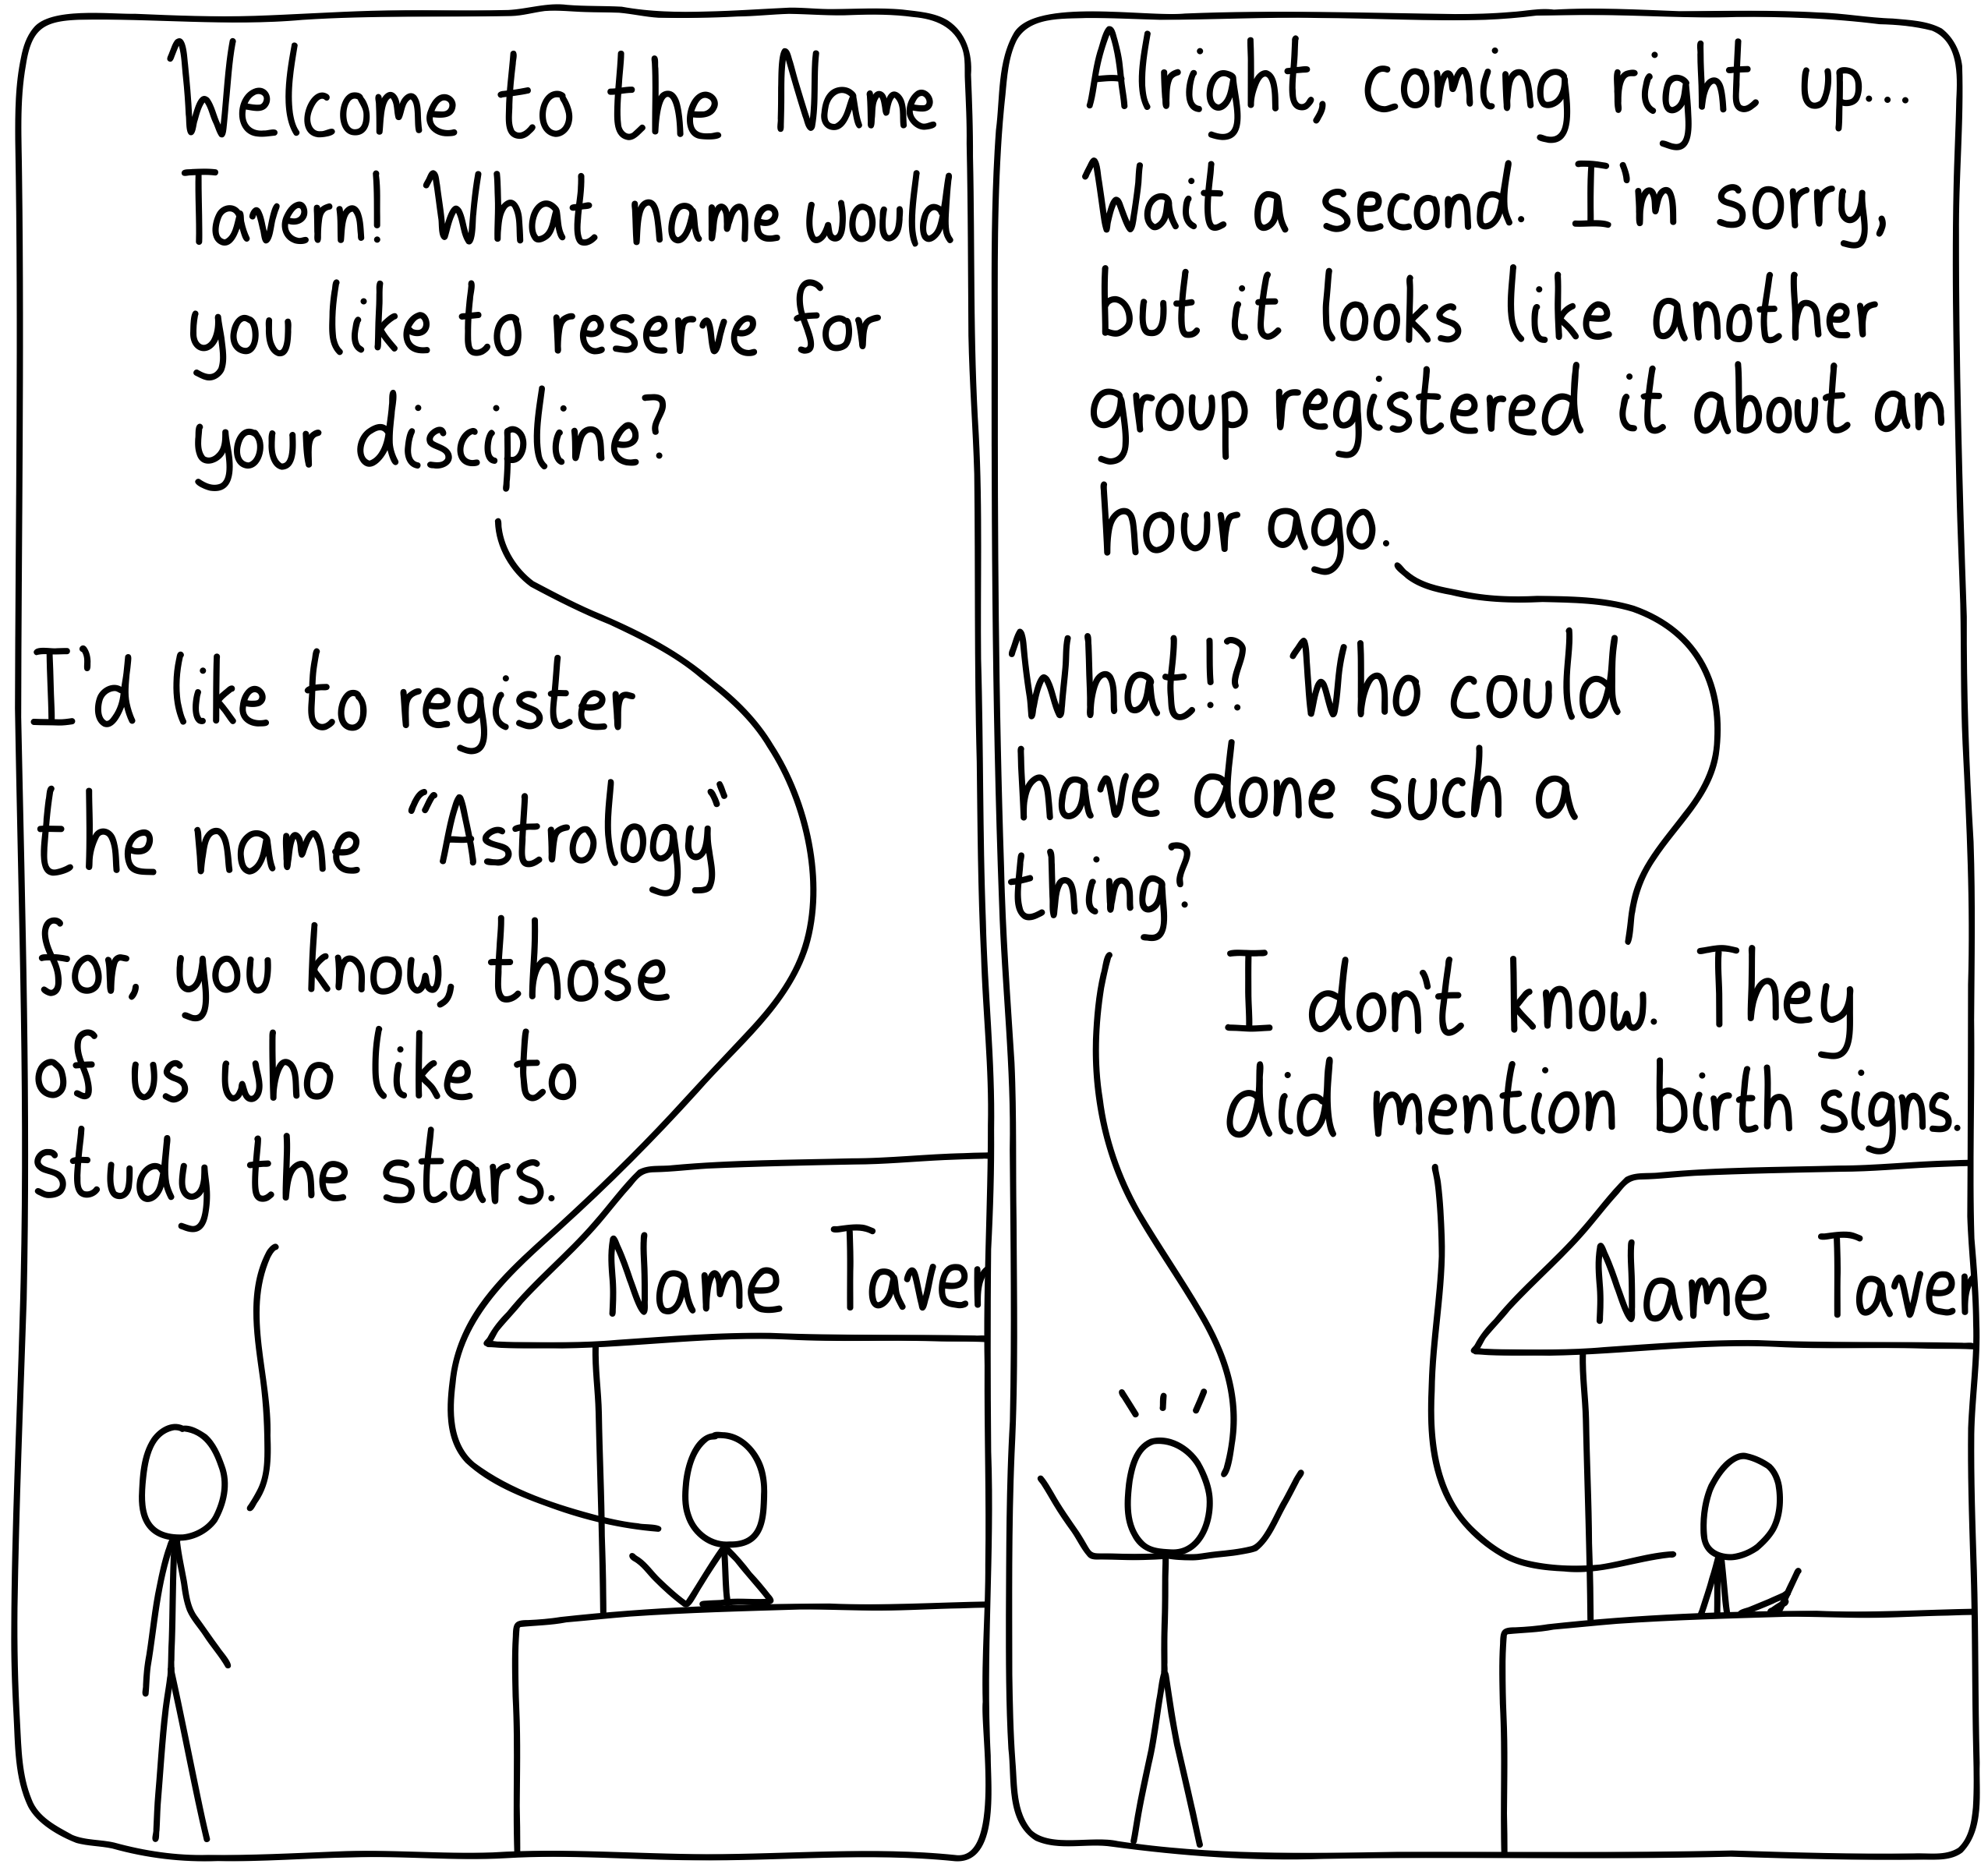 """A scientist approaches the Name Tavern. """"Welcome to the Name Tavern! What name would you like to reserve for your discipline?"""" """"I'd like to register the name 'Astrology' for, you know, those of us who study the stars."""" """"Alright, coming right up..."""" """"Wait a second. I'm sorry, but it looks like another group registered it about an hour ago."""" """"What?! Who could have done such a thing?"""" """"I don't know. They did mention birth signs."""""""